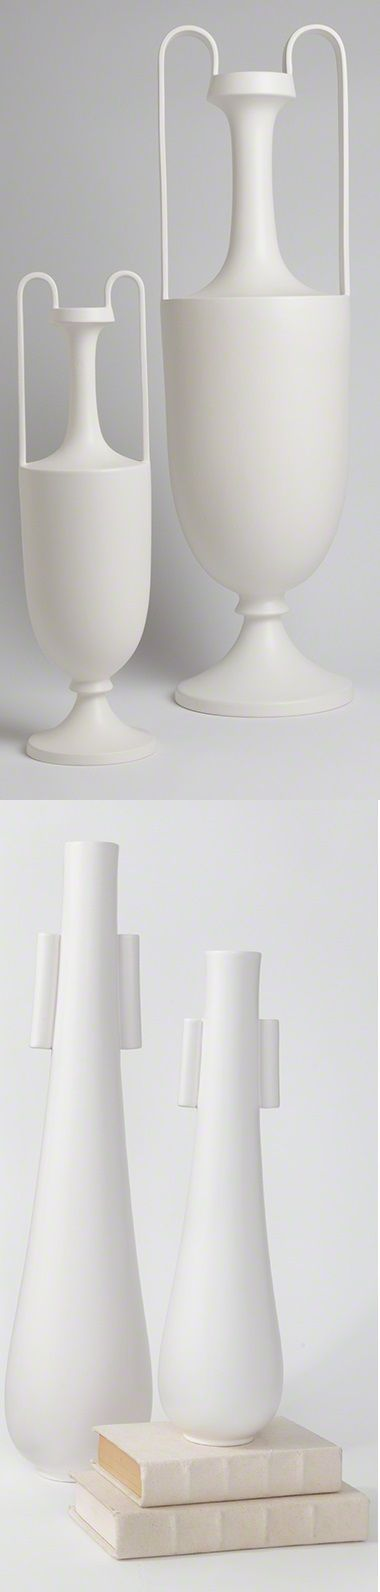 White Vases | White Vase | White Vases For Sale | White Bowls | White Bowl | White Bowls For Sale | White Jars | White Jar | White Jars For Sale | White Porcelain Vase | White Porcelain Vases | White Ceramic Vases | White Ceramic Vase | White Porcelain Jars | White Porcelain Jar | InStyle Decor Hollywood Over 1,000 Designs View @ www.instyle-decor.com/white-vases.html Worldwide Shipping Our Clients Inc: Four Seasons Hotels, Hyatt Hotels, Hilton Hotels & Many More